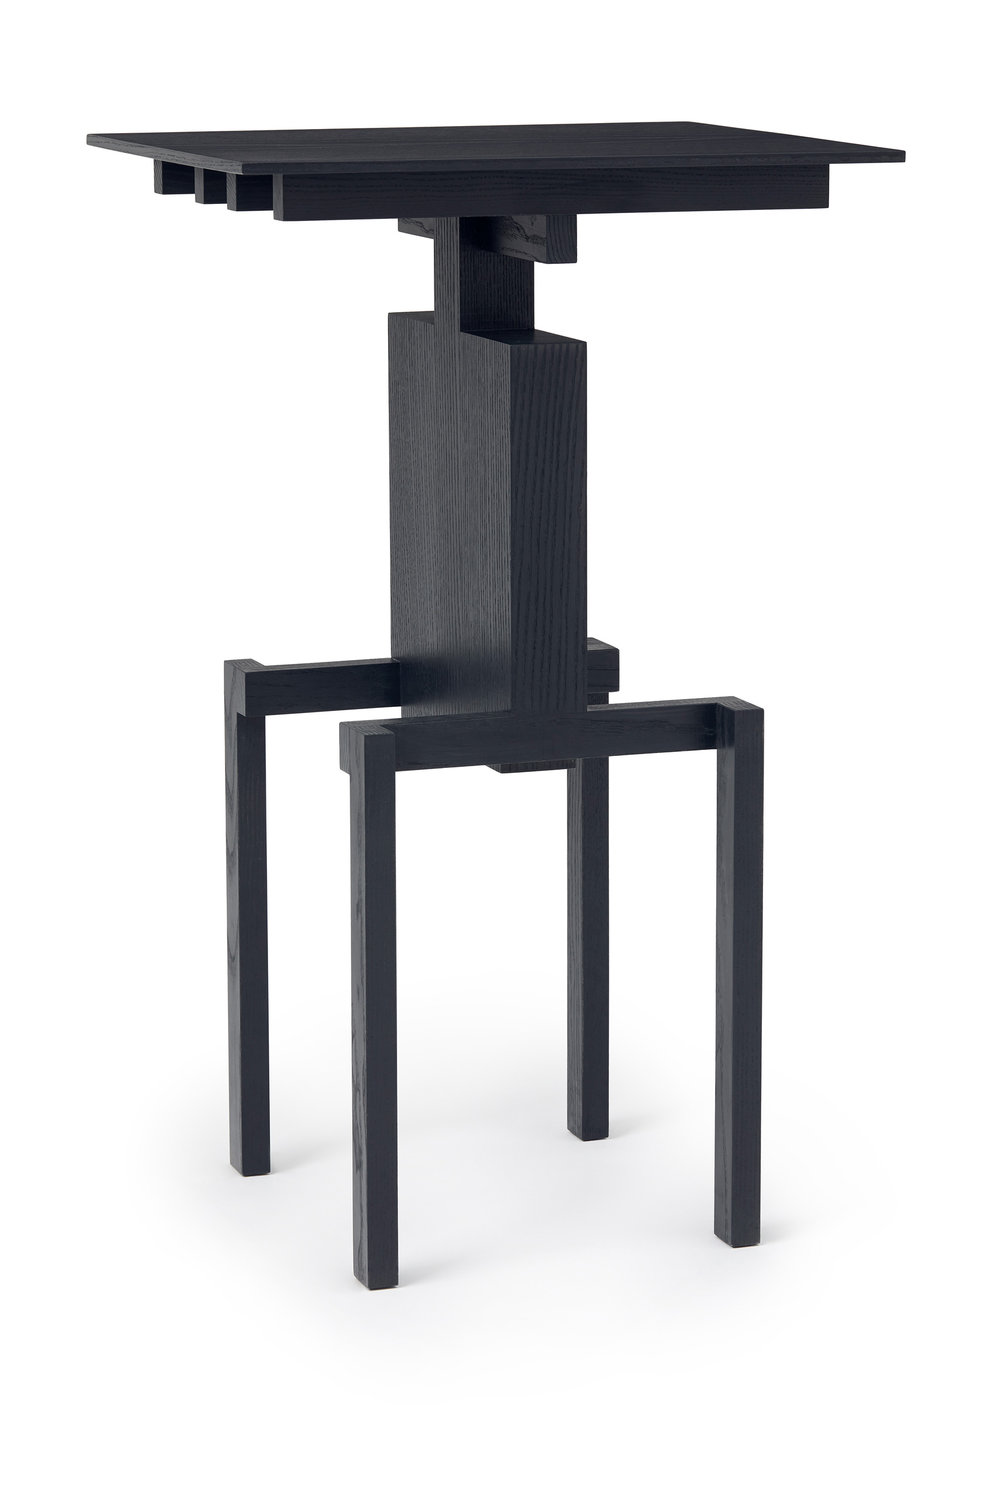 Studio-Pascal-Howe_SideTable_Black_Shop.jpg